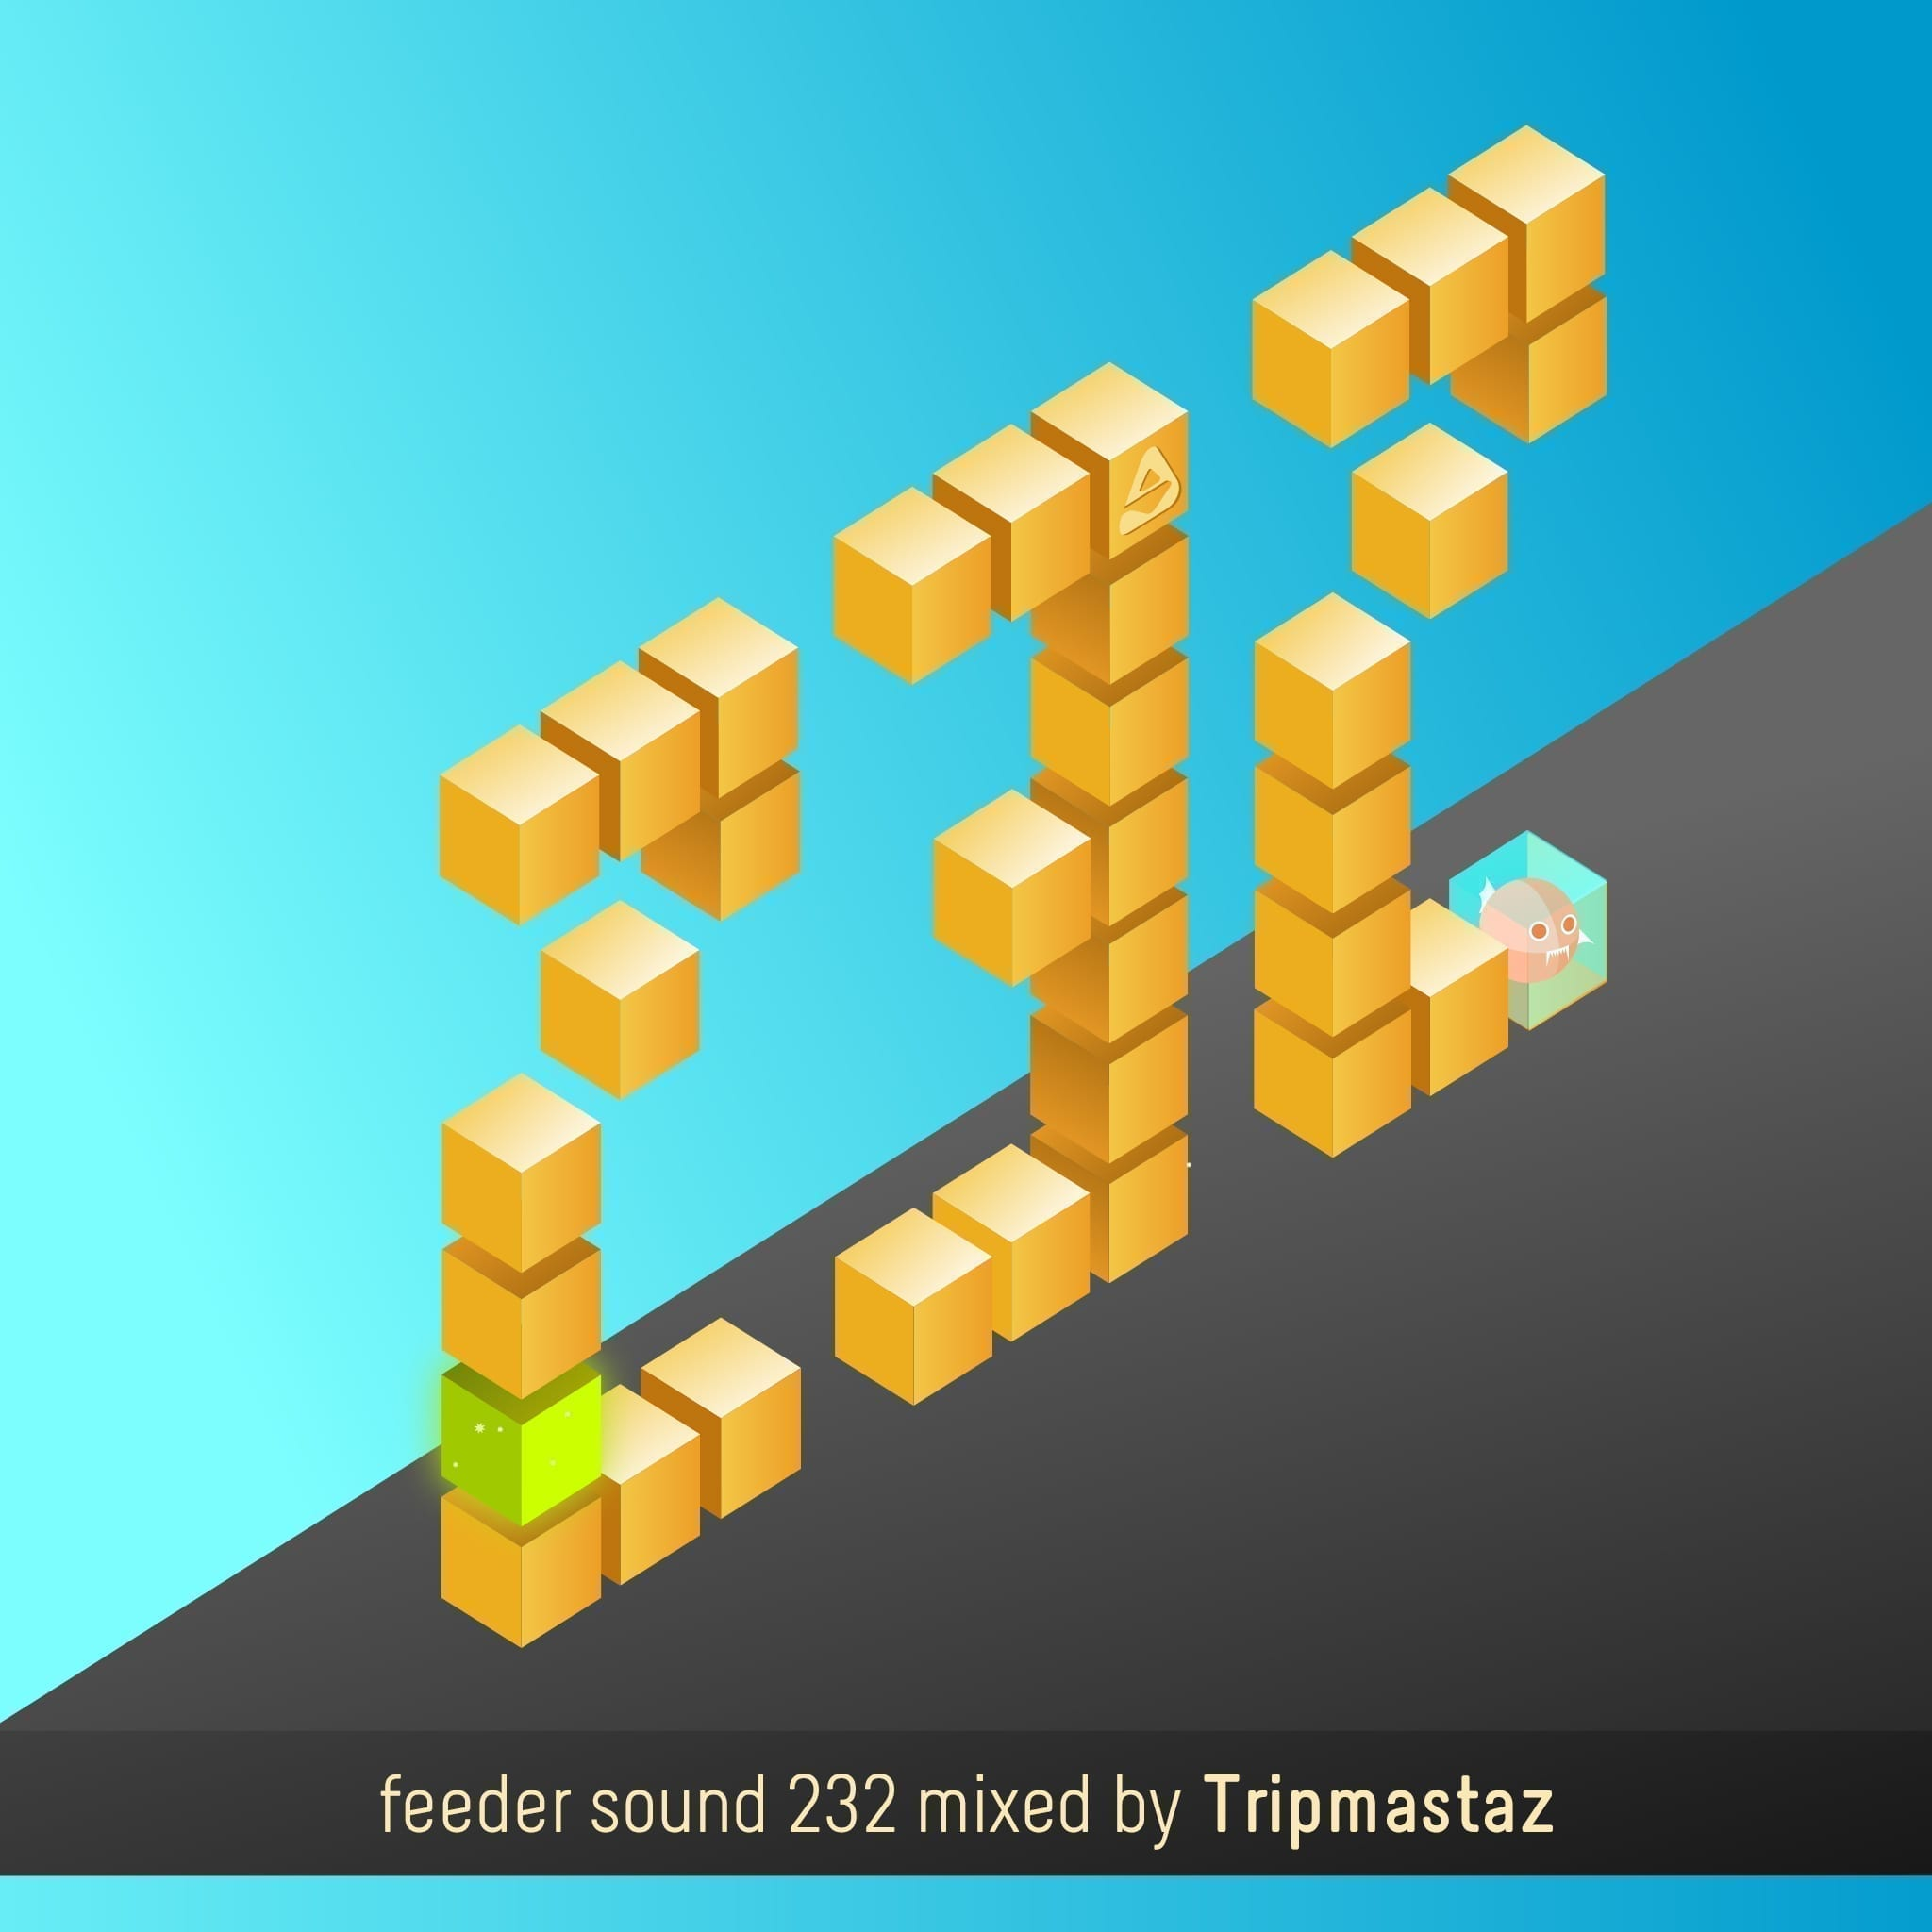 feeder sound 232 mixed by Tripmastaz article-cover